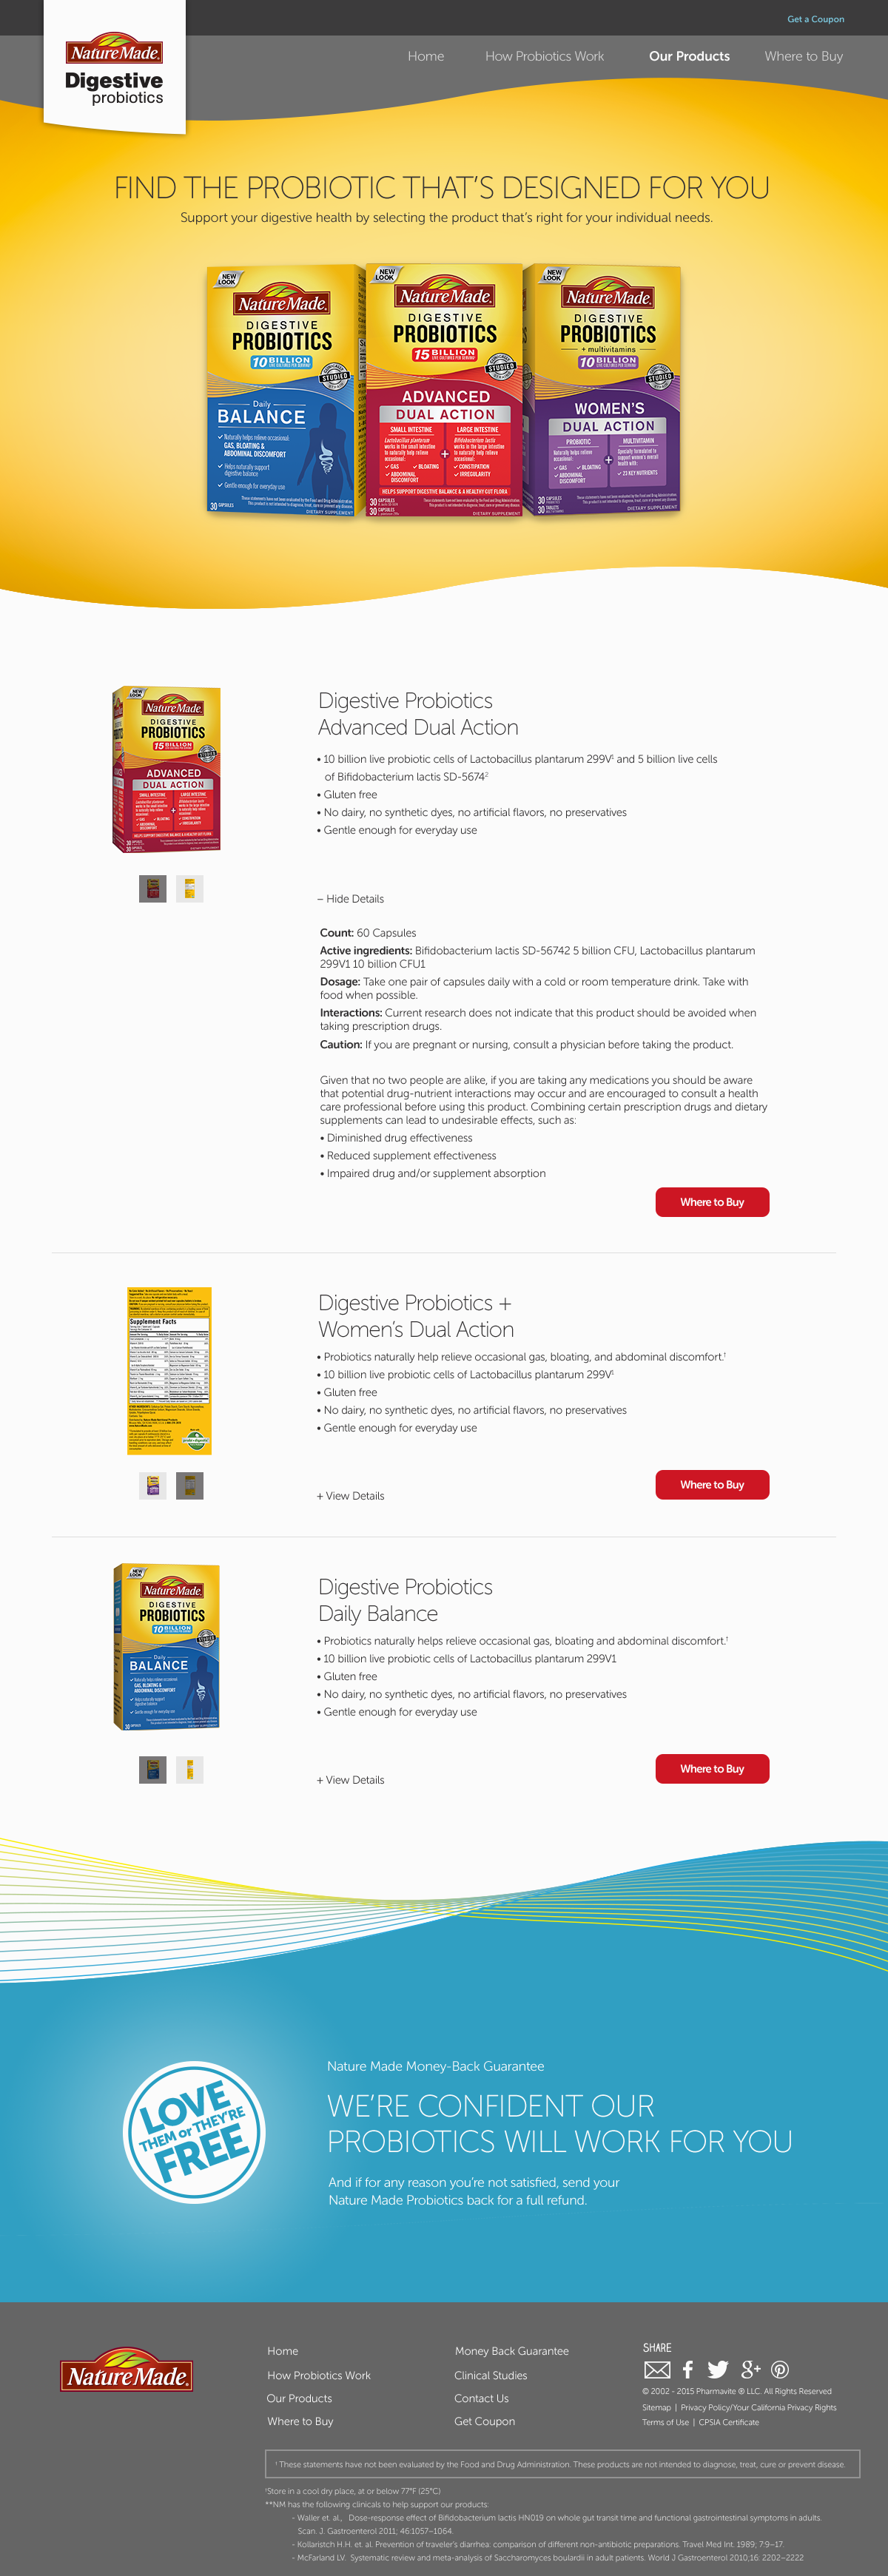 Nature-Made-Probiotics-Microsite-OurProducts.png